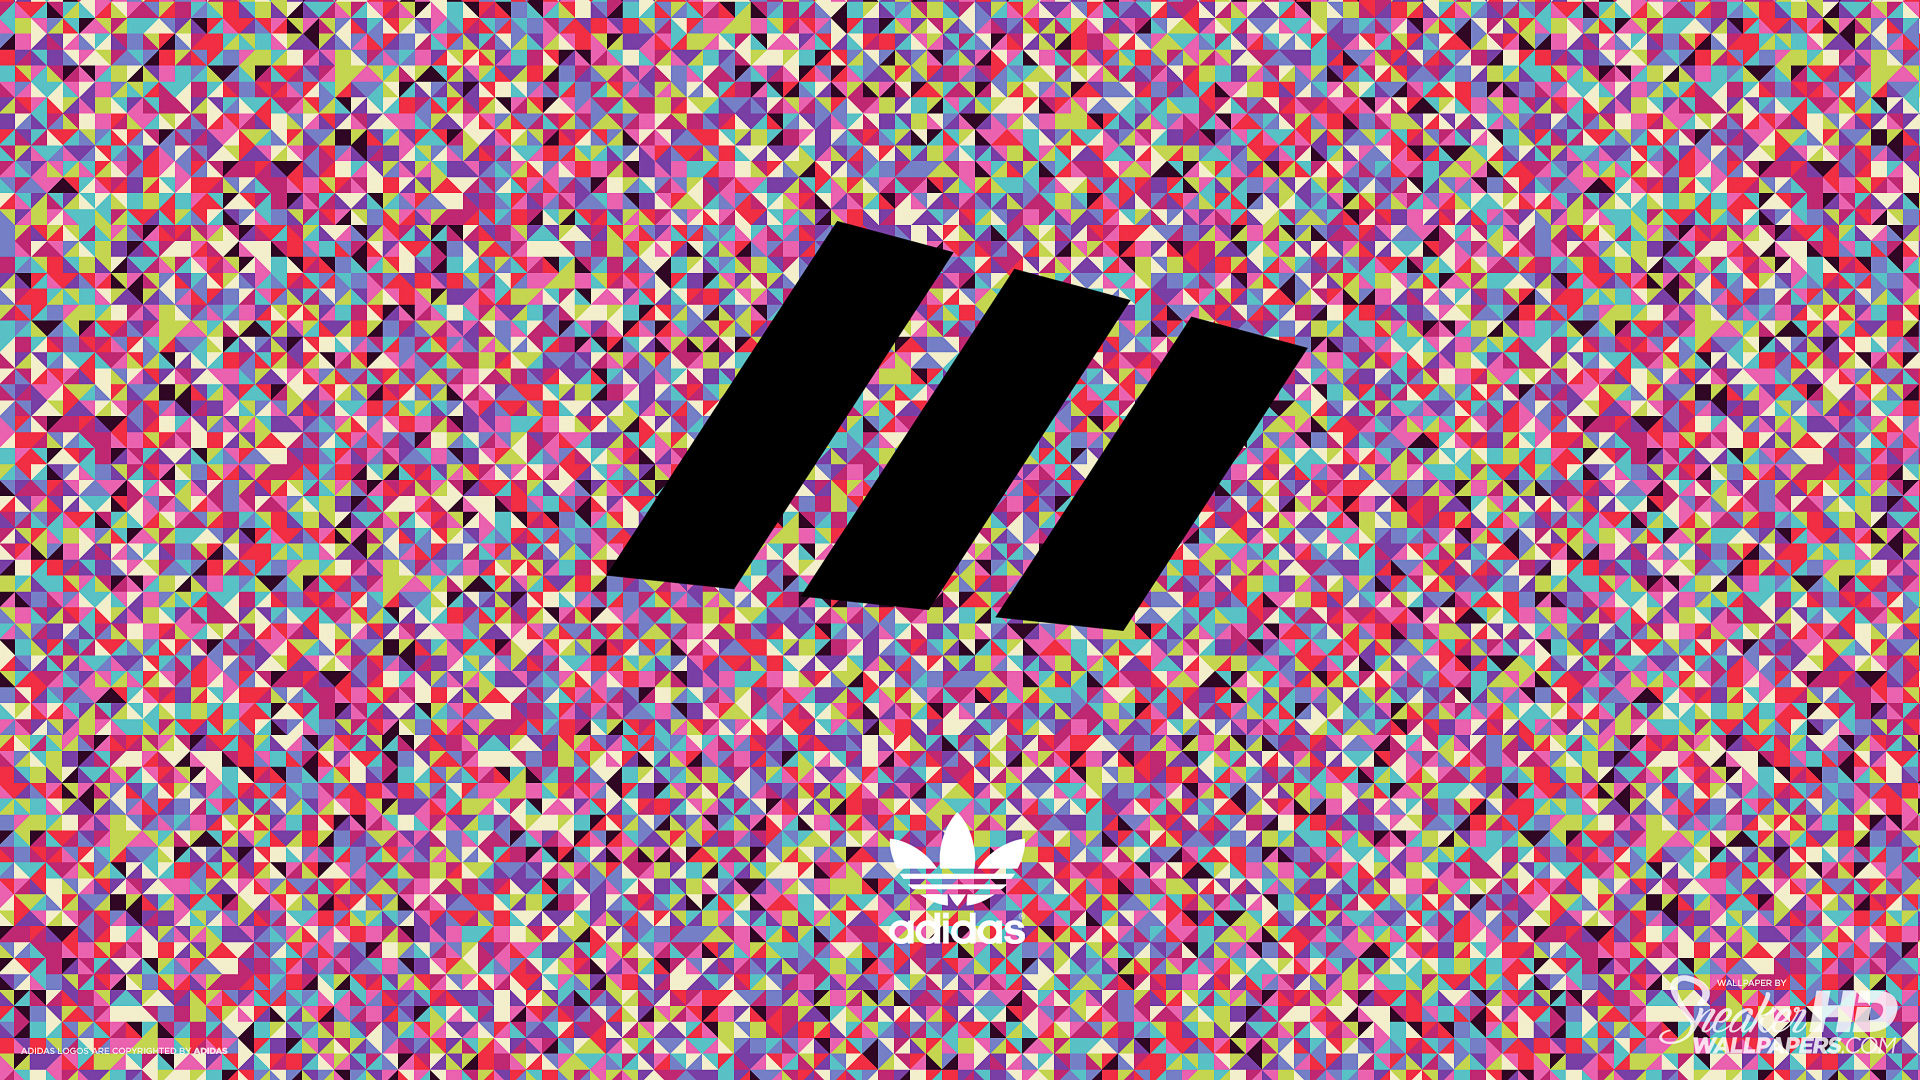 Adidas ZX Flux Multicolor Prism wallpaper in 1080p AND 4K resolutions 1920x1080